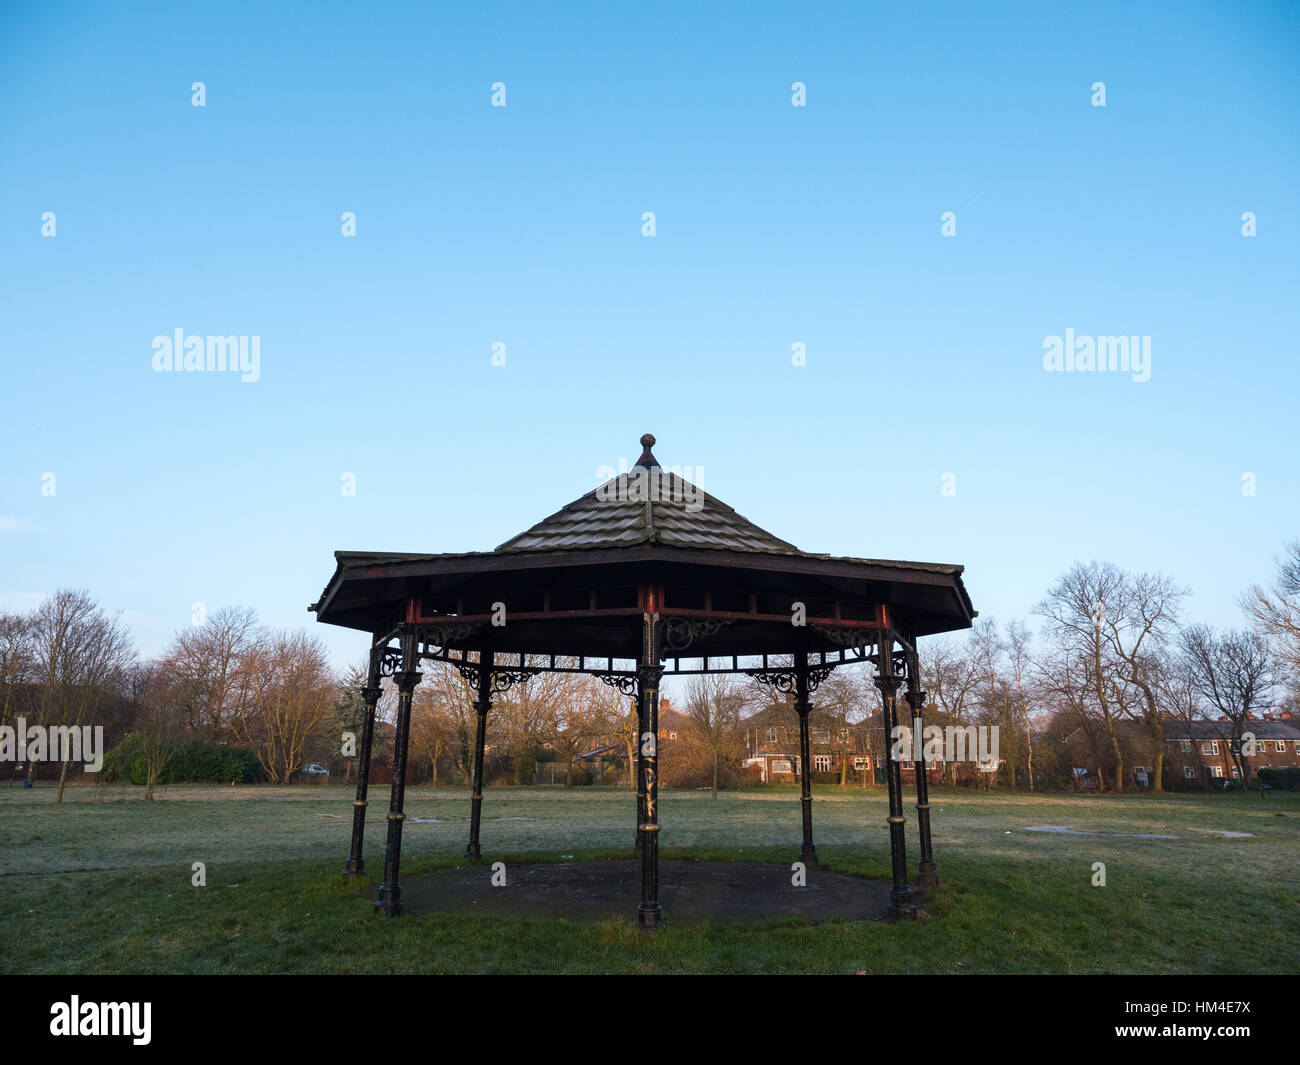 A vandalised victorian bandstand in a public park in Manchester - Stock Image